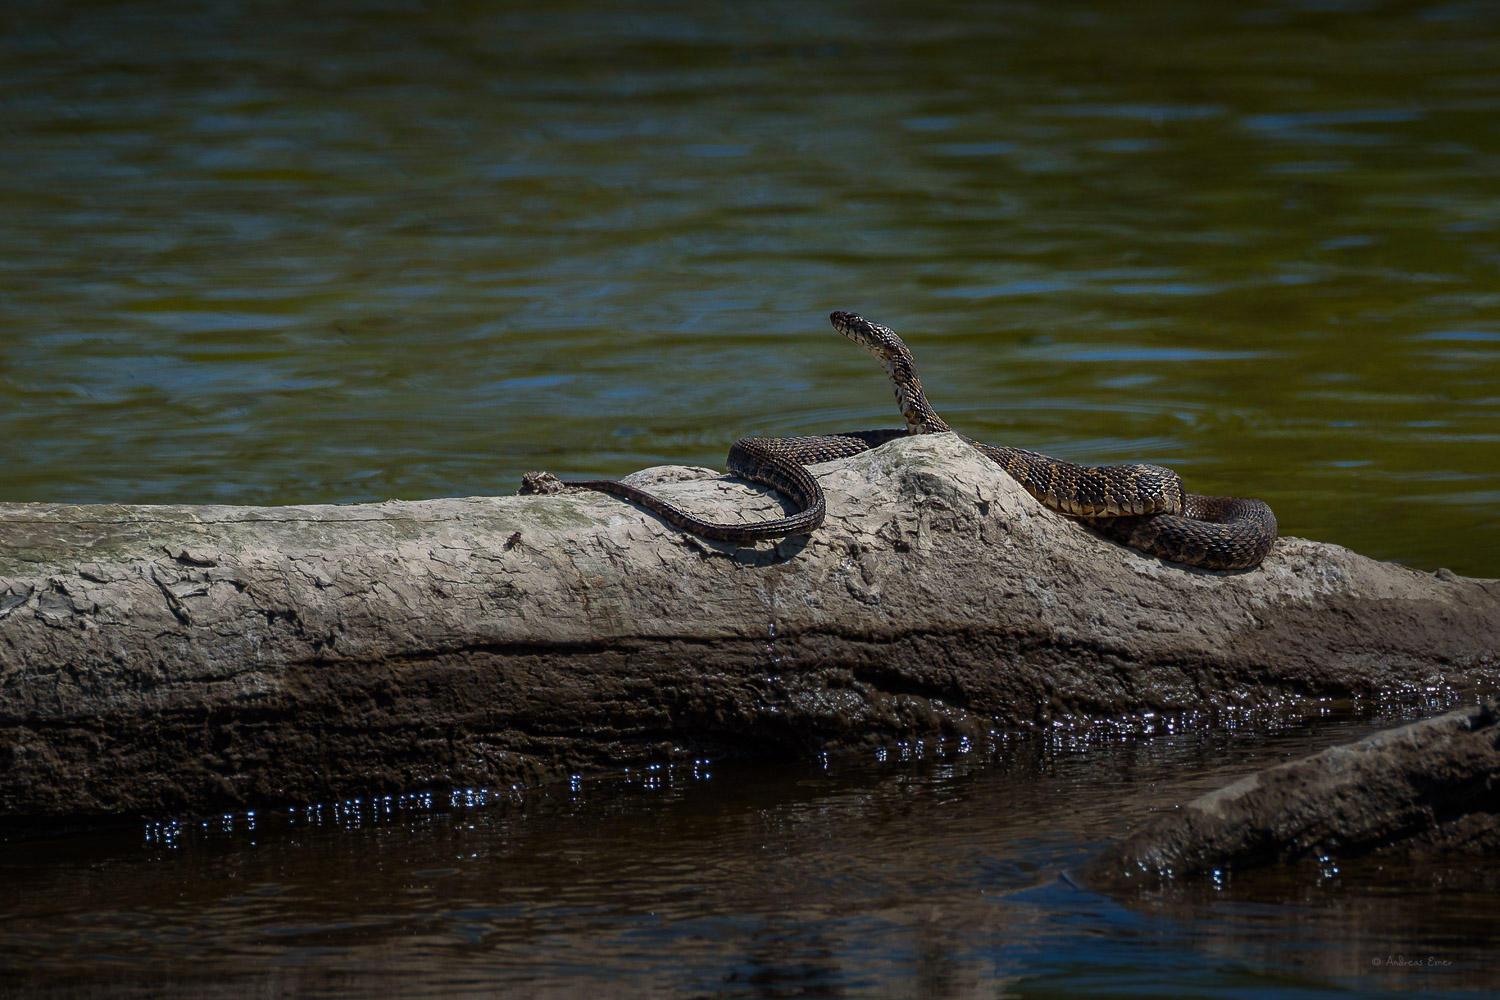 Northern Water Snake, Mississippi River, Deere Dyke, Dubuque, Iowa ---------